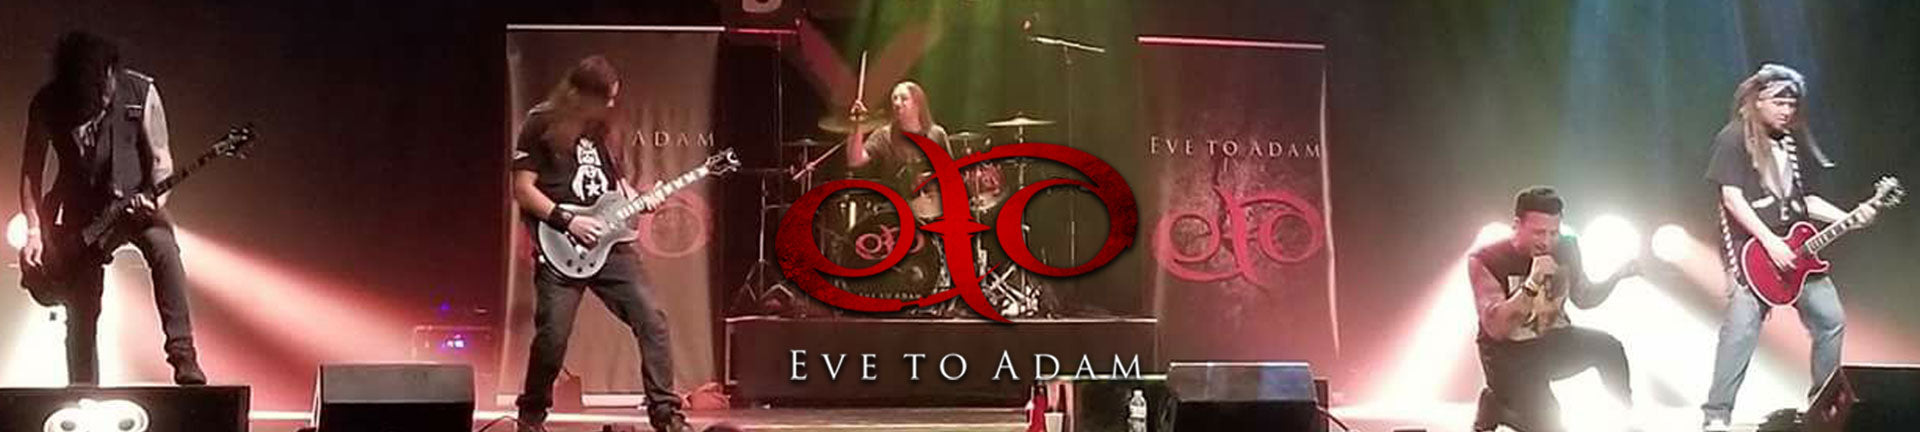 Eve To Adam-Tour Merch